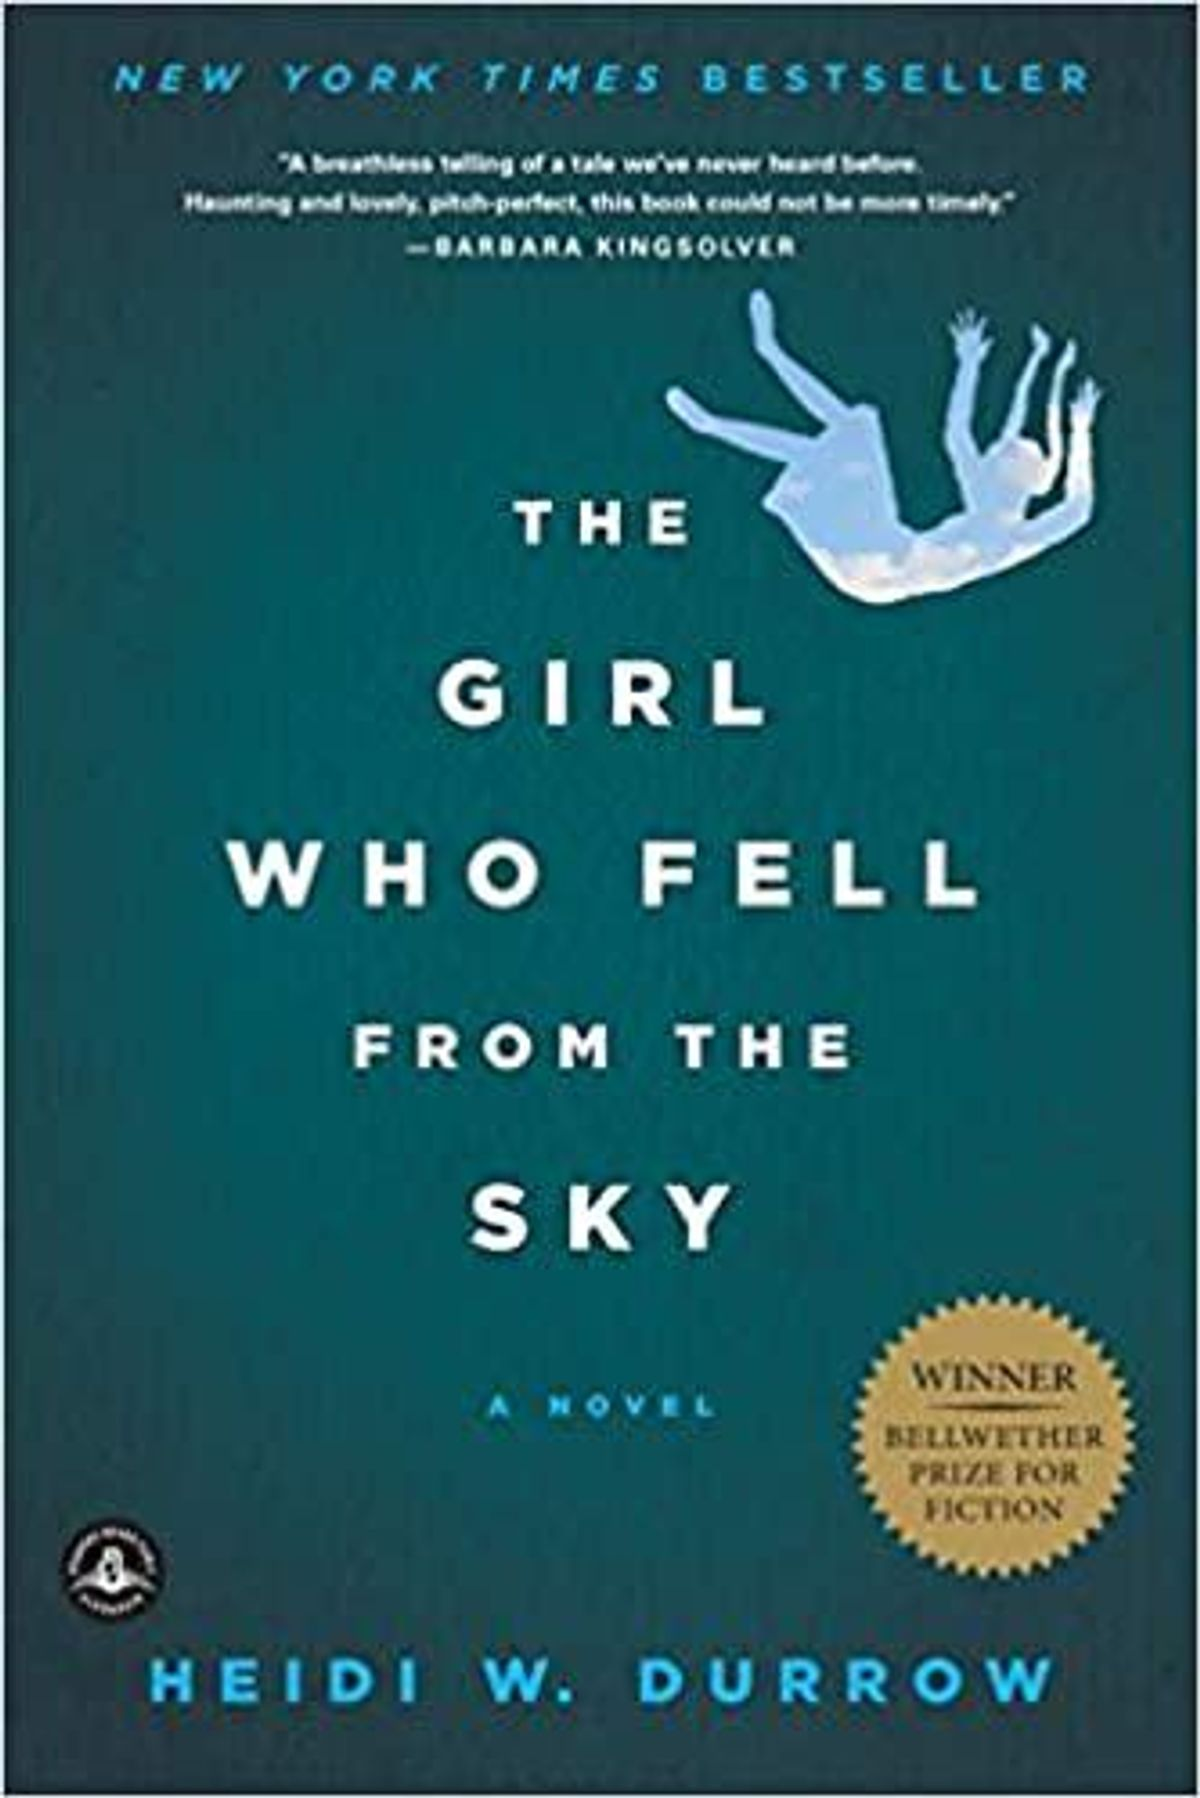 The Girl Who Fell From the Sky by Heidi W Durrow